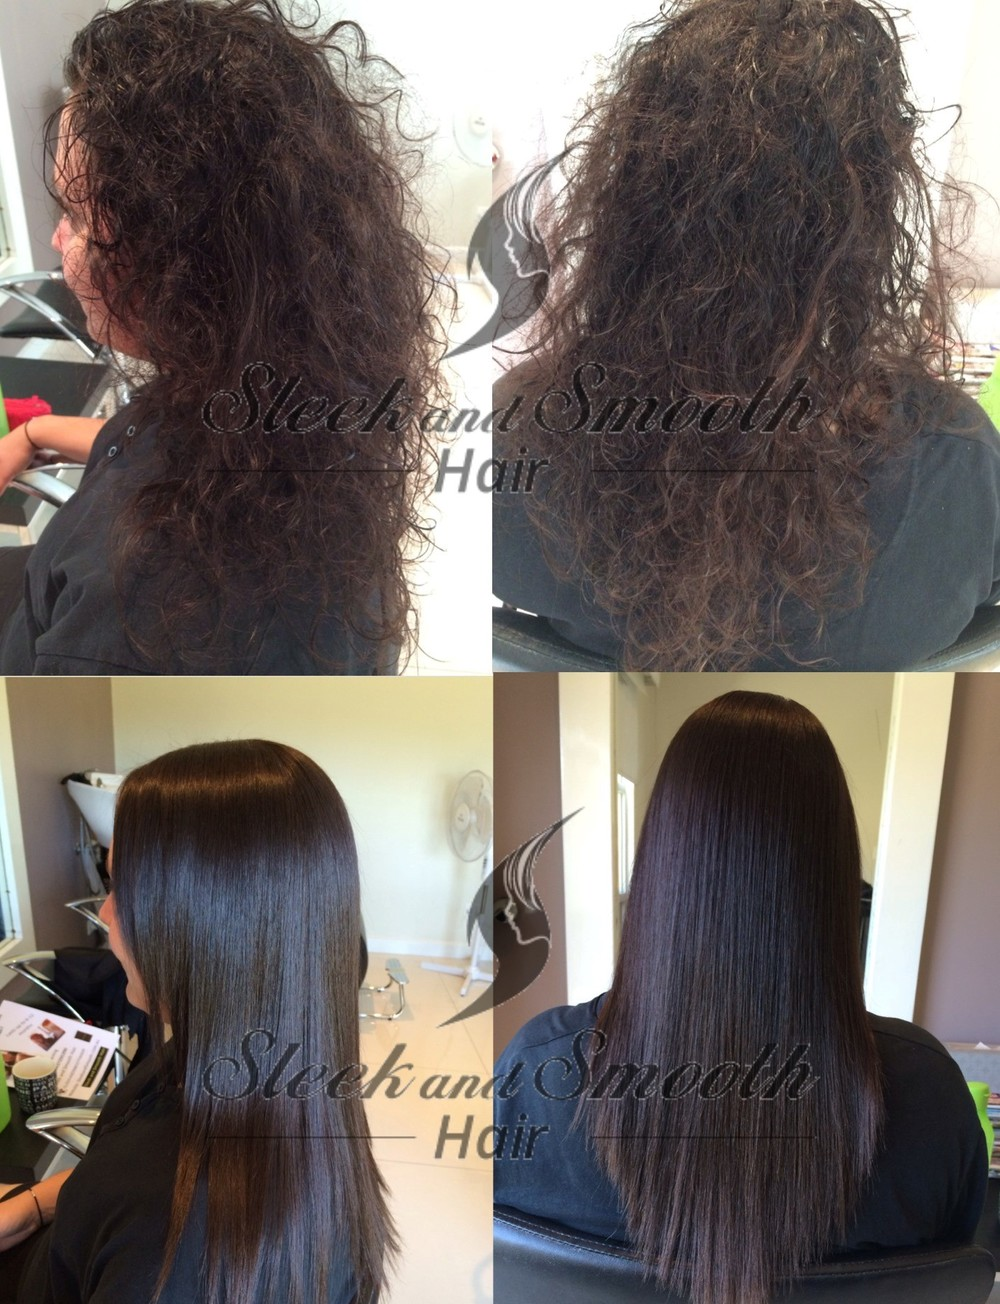 Permanent Japanese Hair Straightening Sleek And Smooth